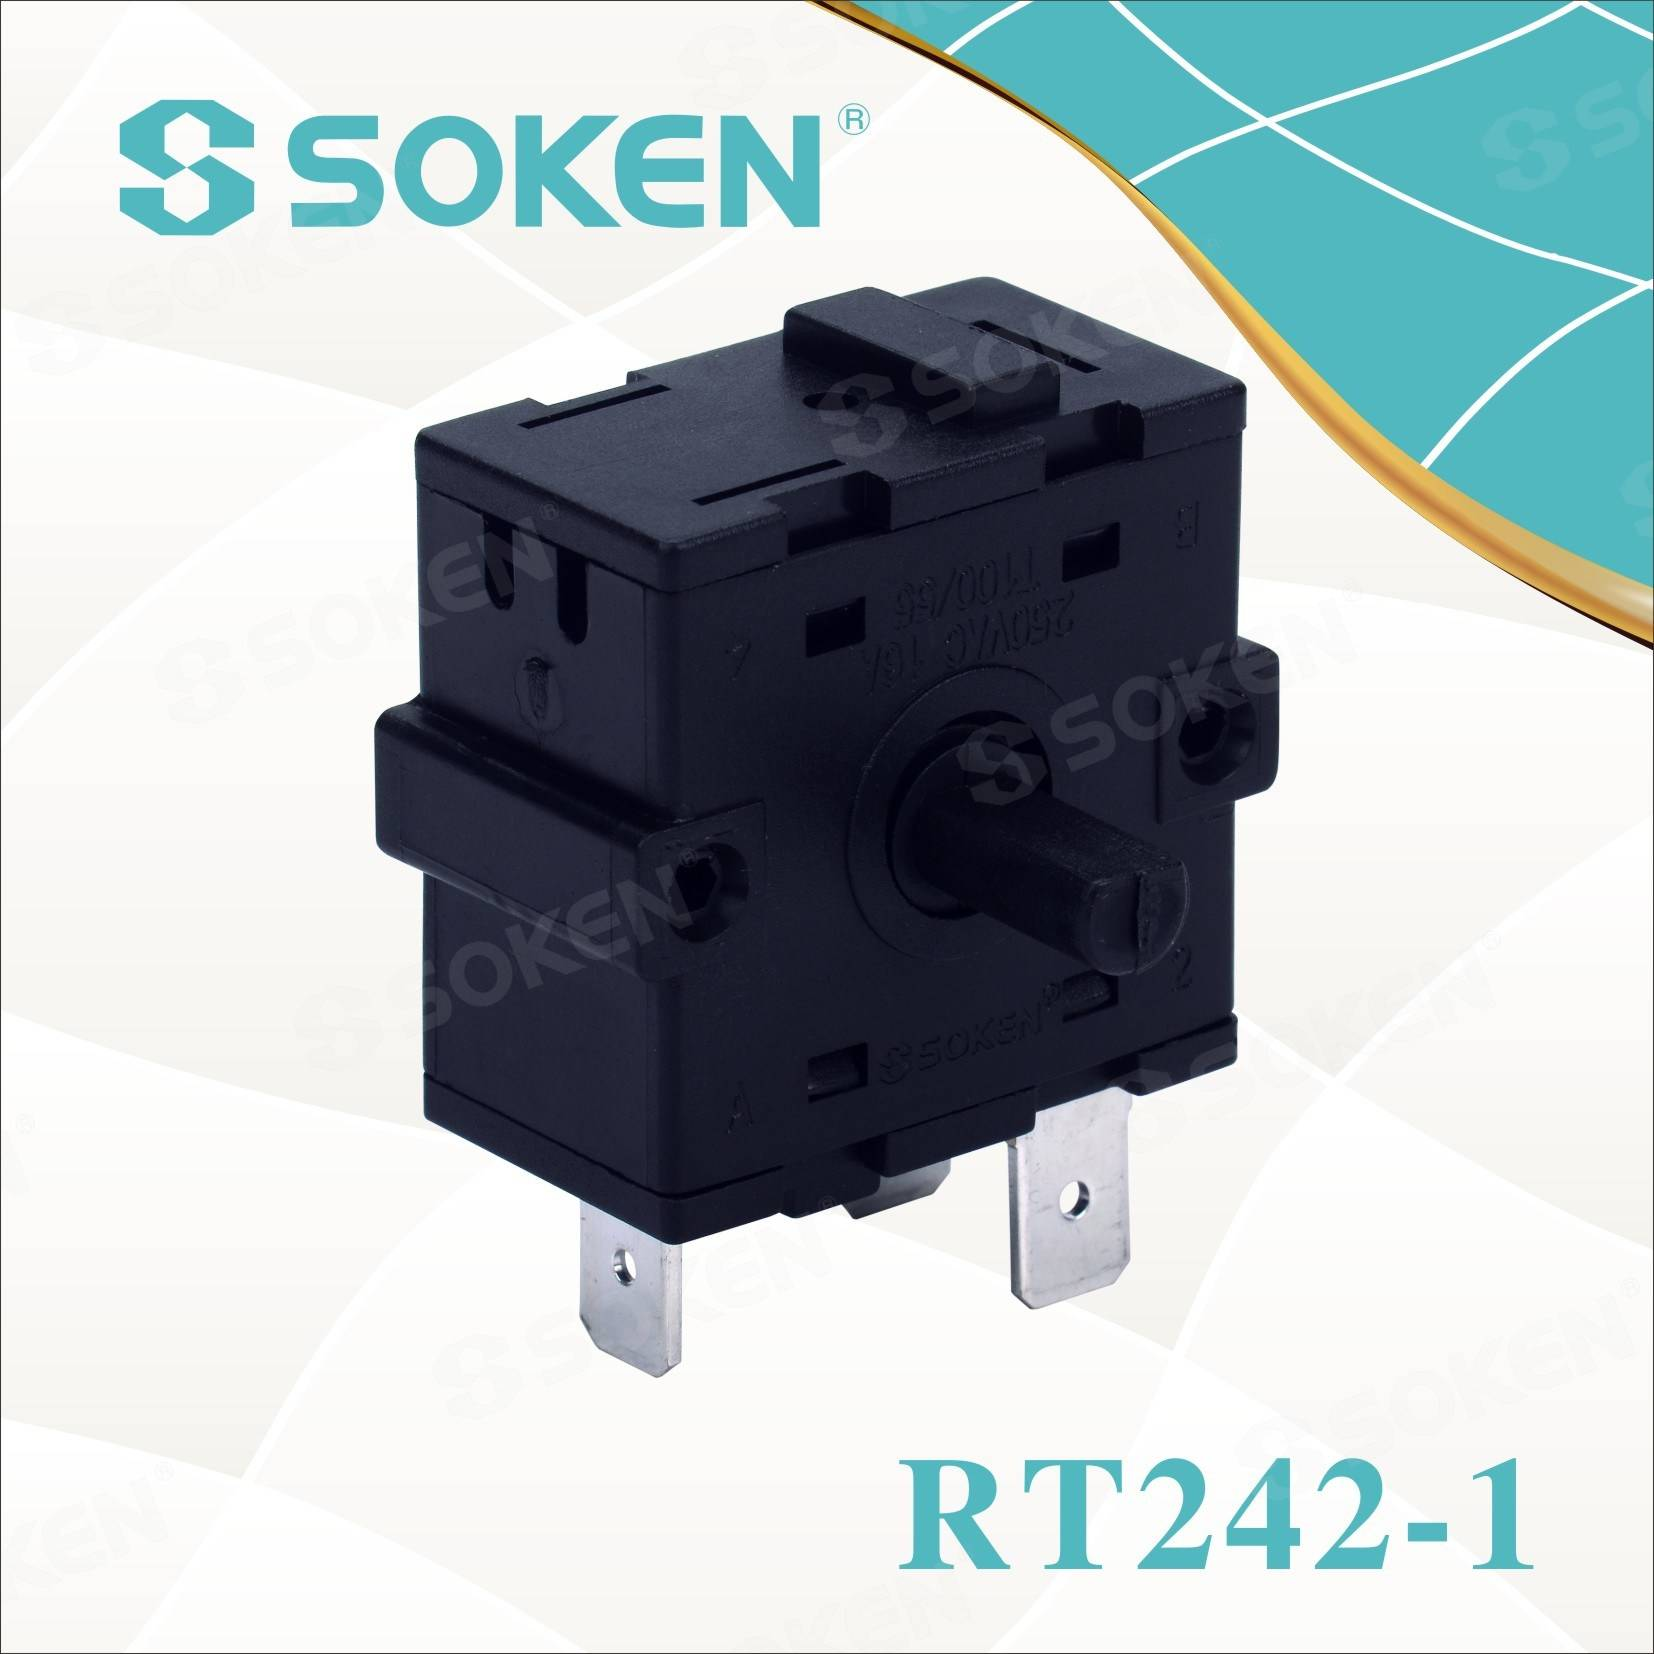 Soken Rotary Switch pour Cooker